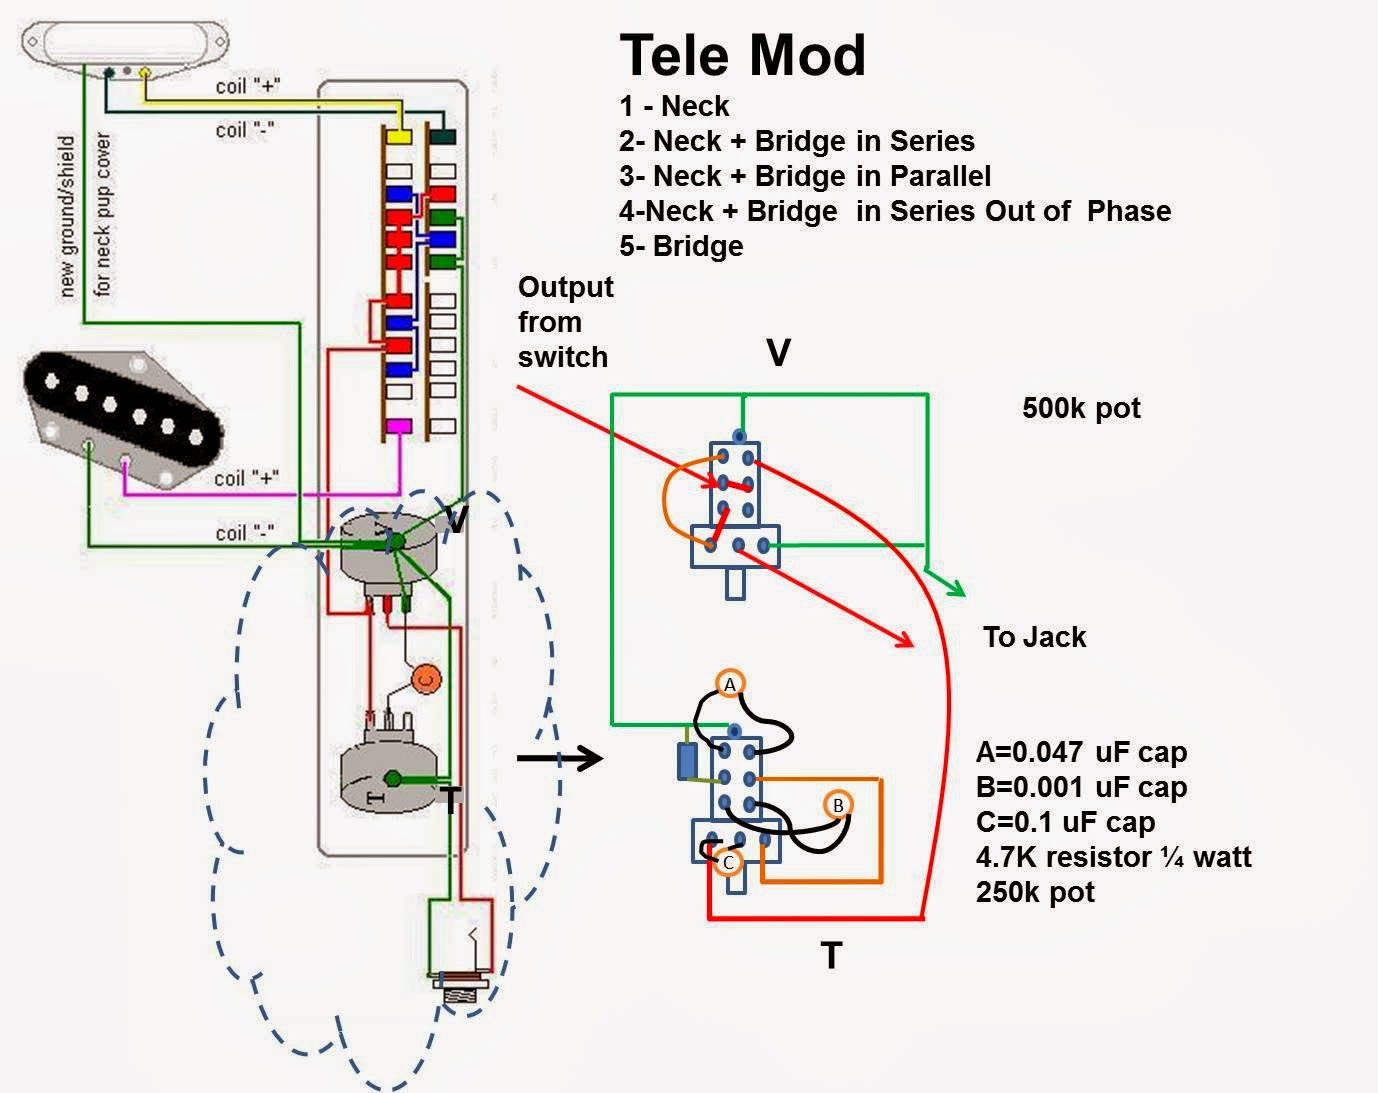 andy summers telecaster wiring diagram wiring diagram technic andy summers telecaster wiring diagram [ 1378 x 1093 Pixel ]